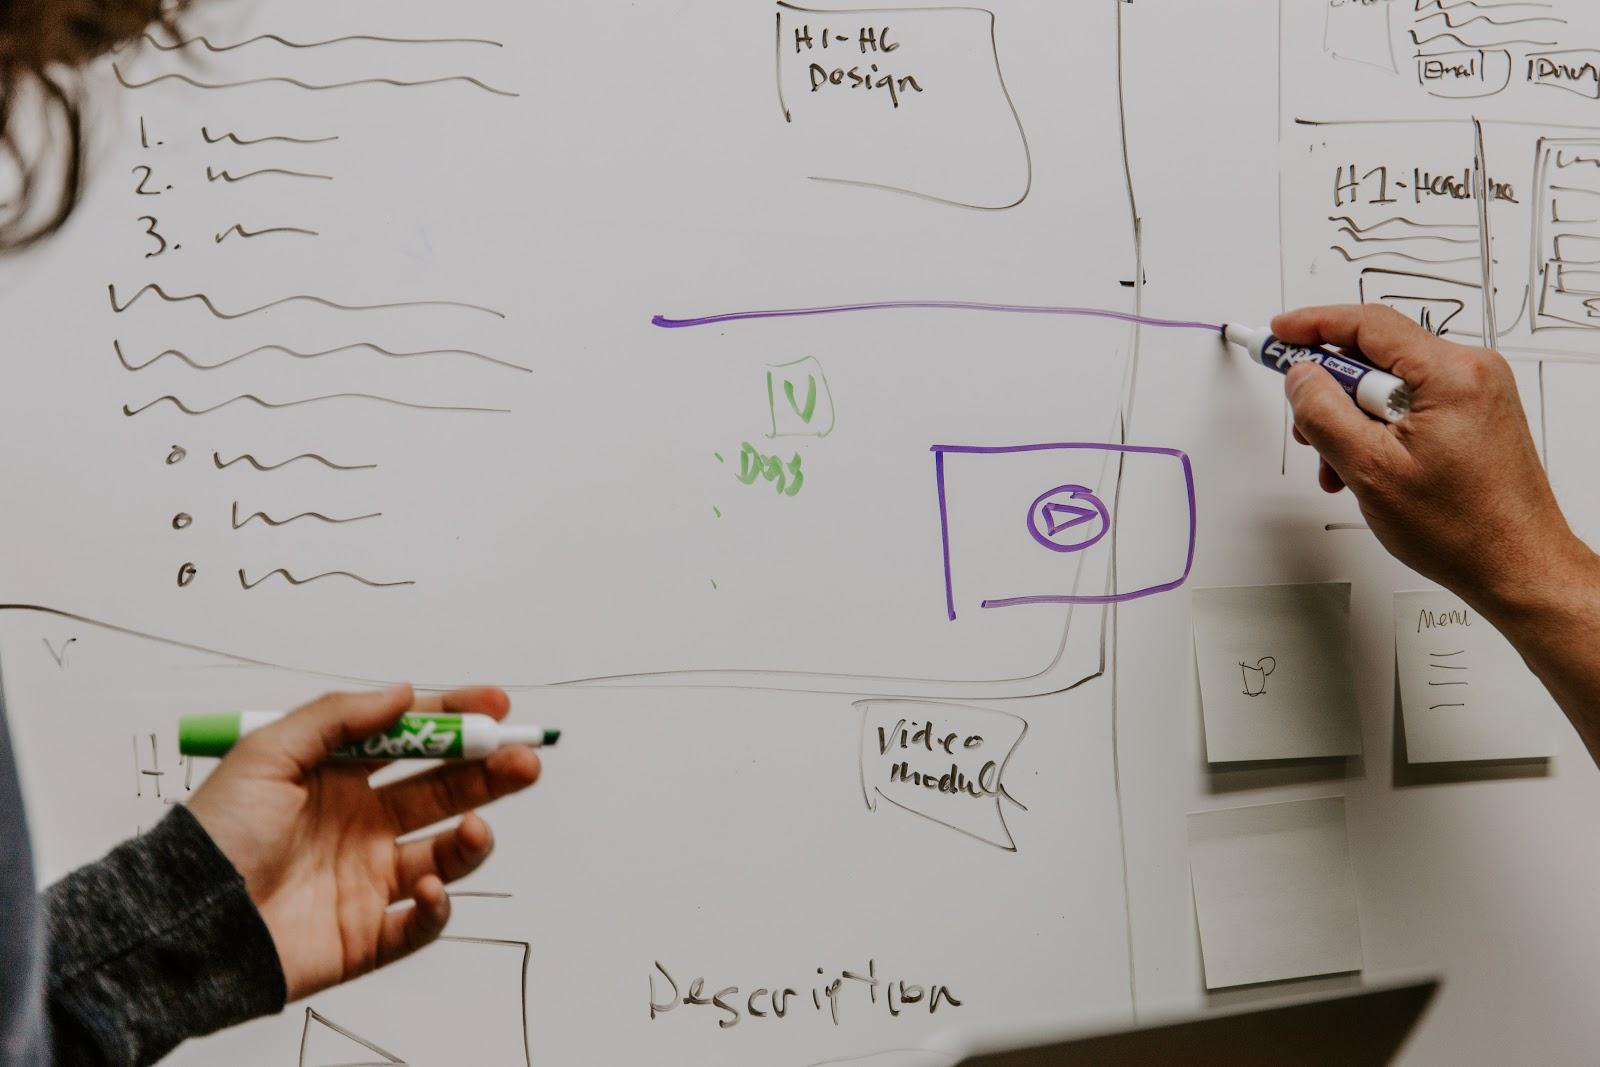 how to become product designer?